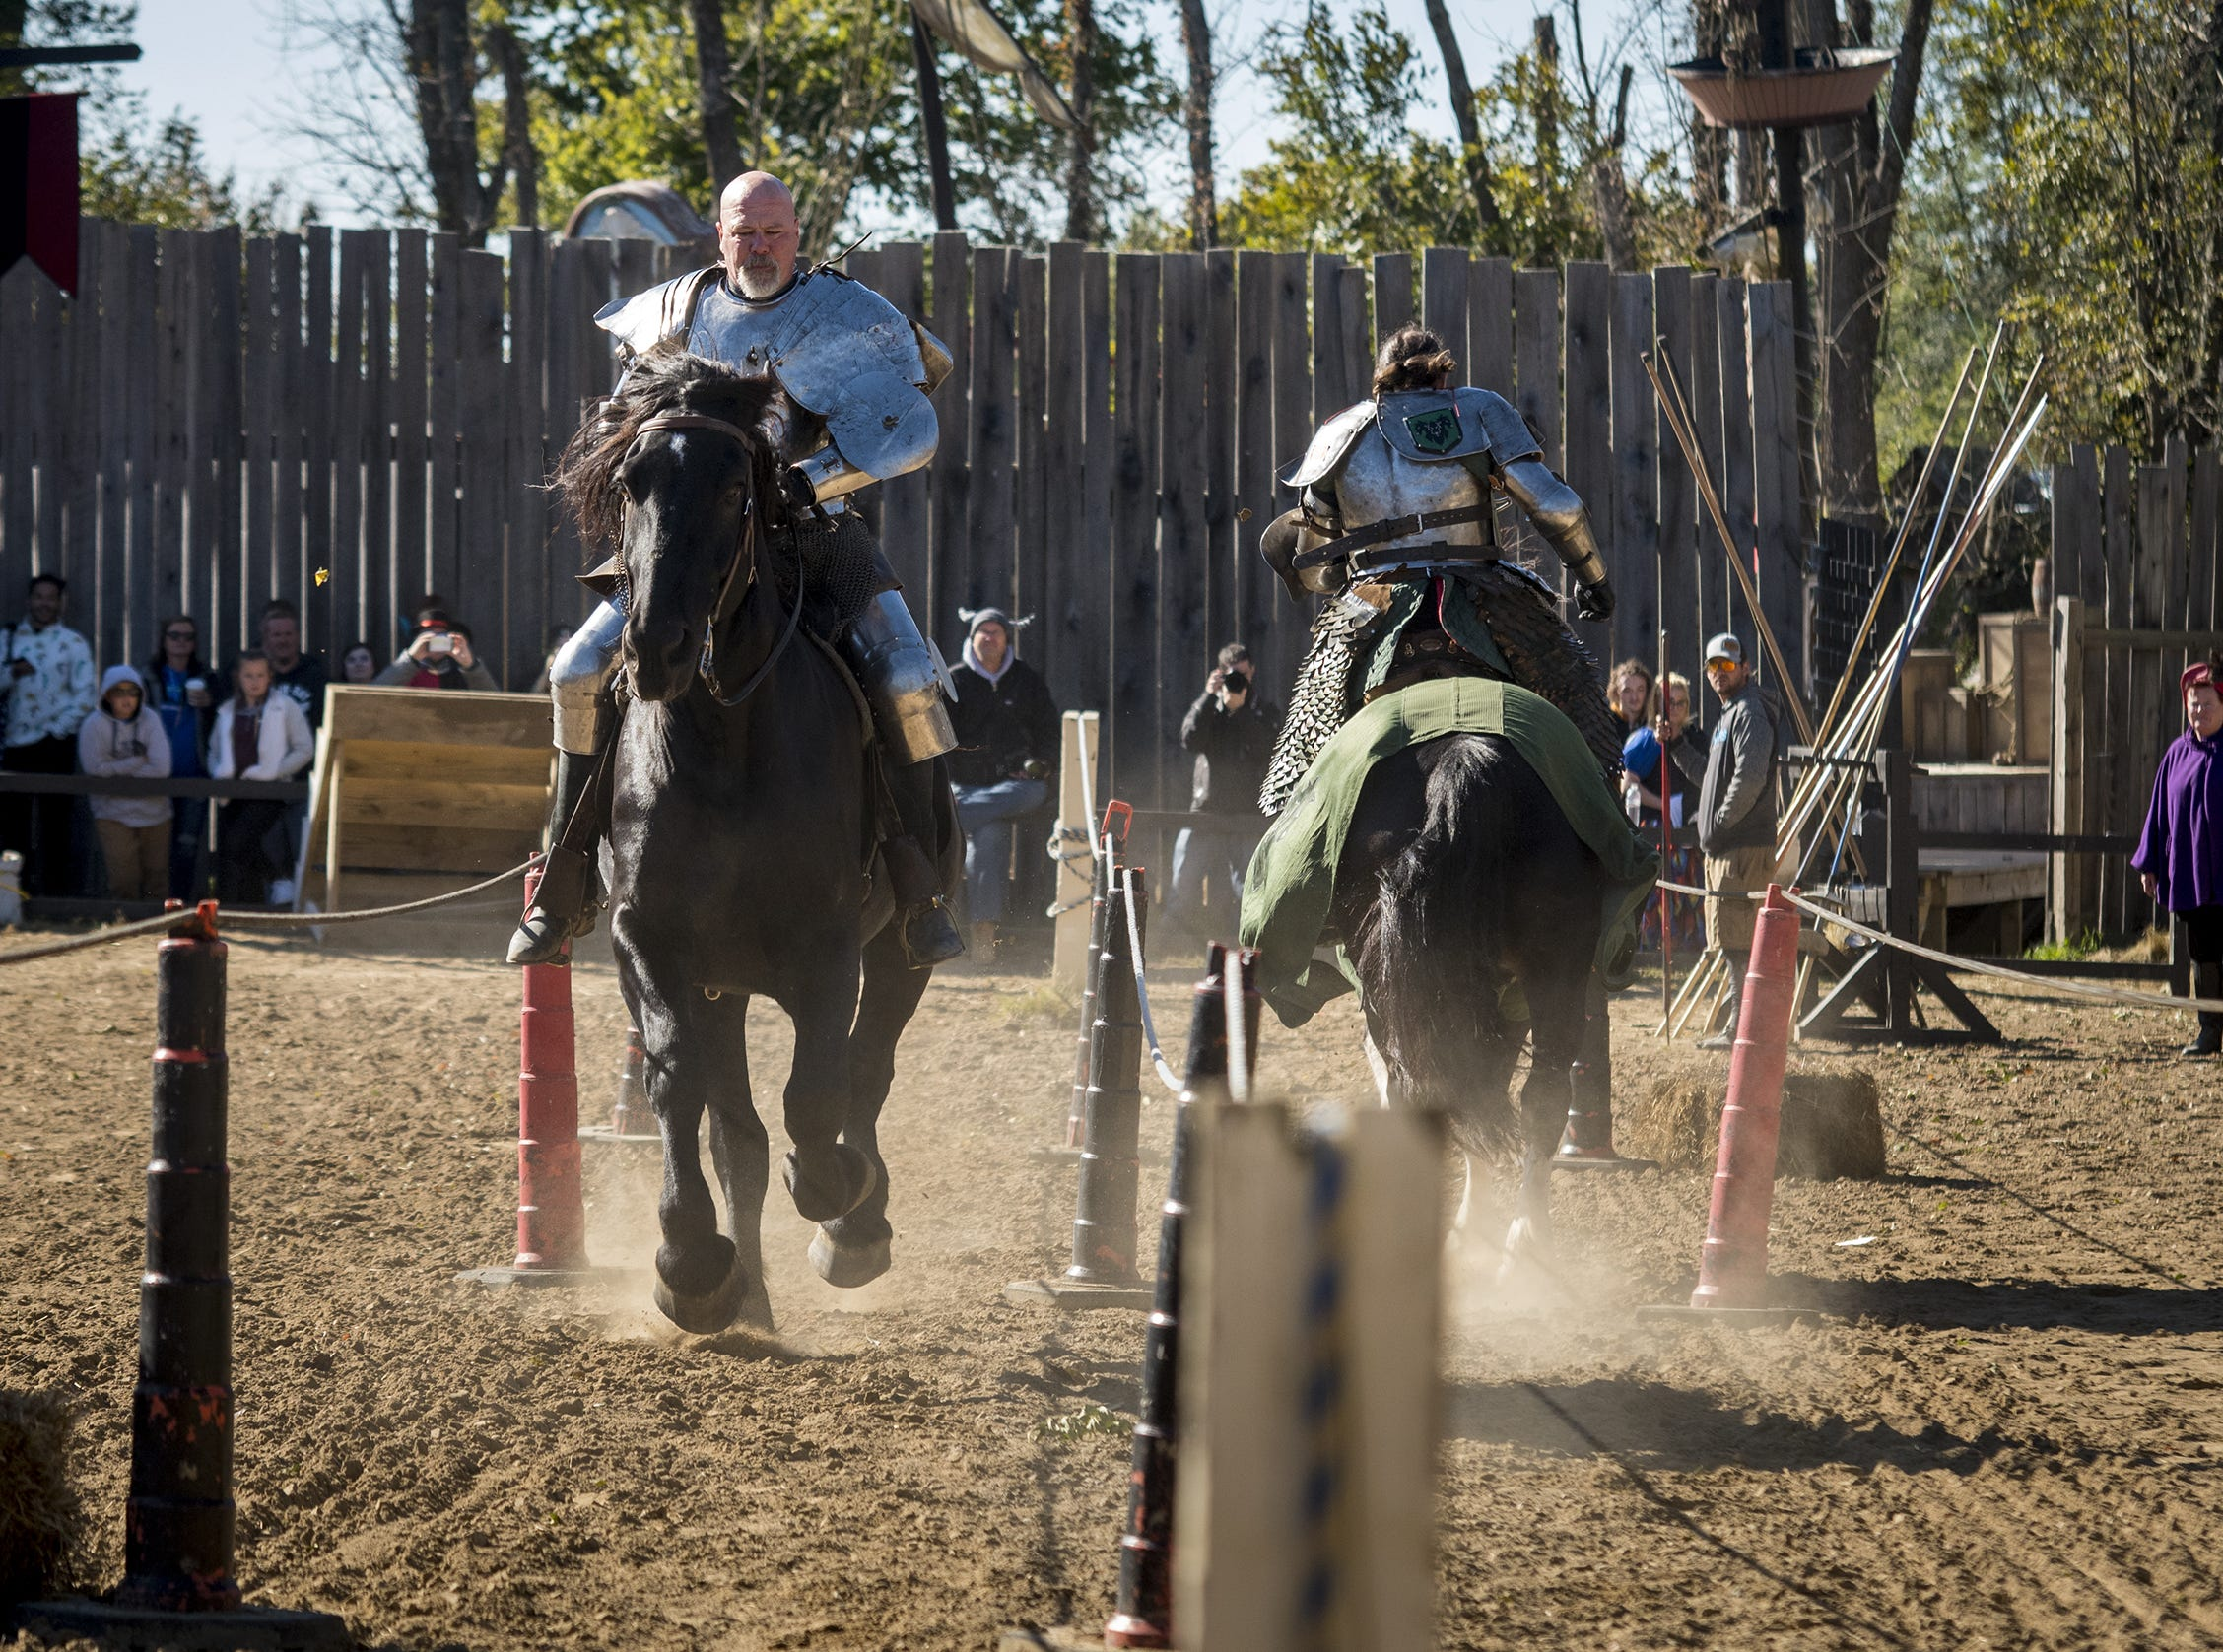 Sir Theodore and Sir Robert ride through the lists during the live jousting show at the Ohio Renaissance Festival Sunday, October 21, 2018 in Waynesville, Ohio.